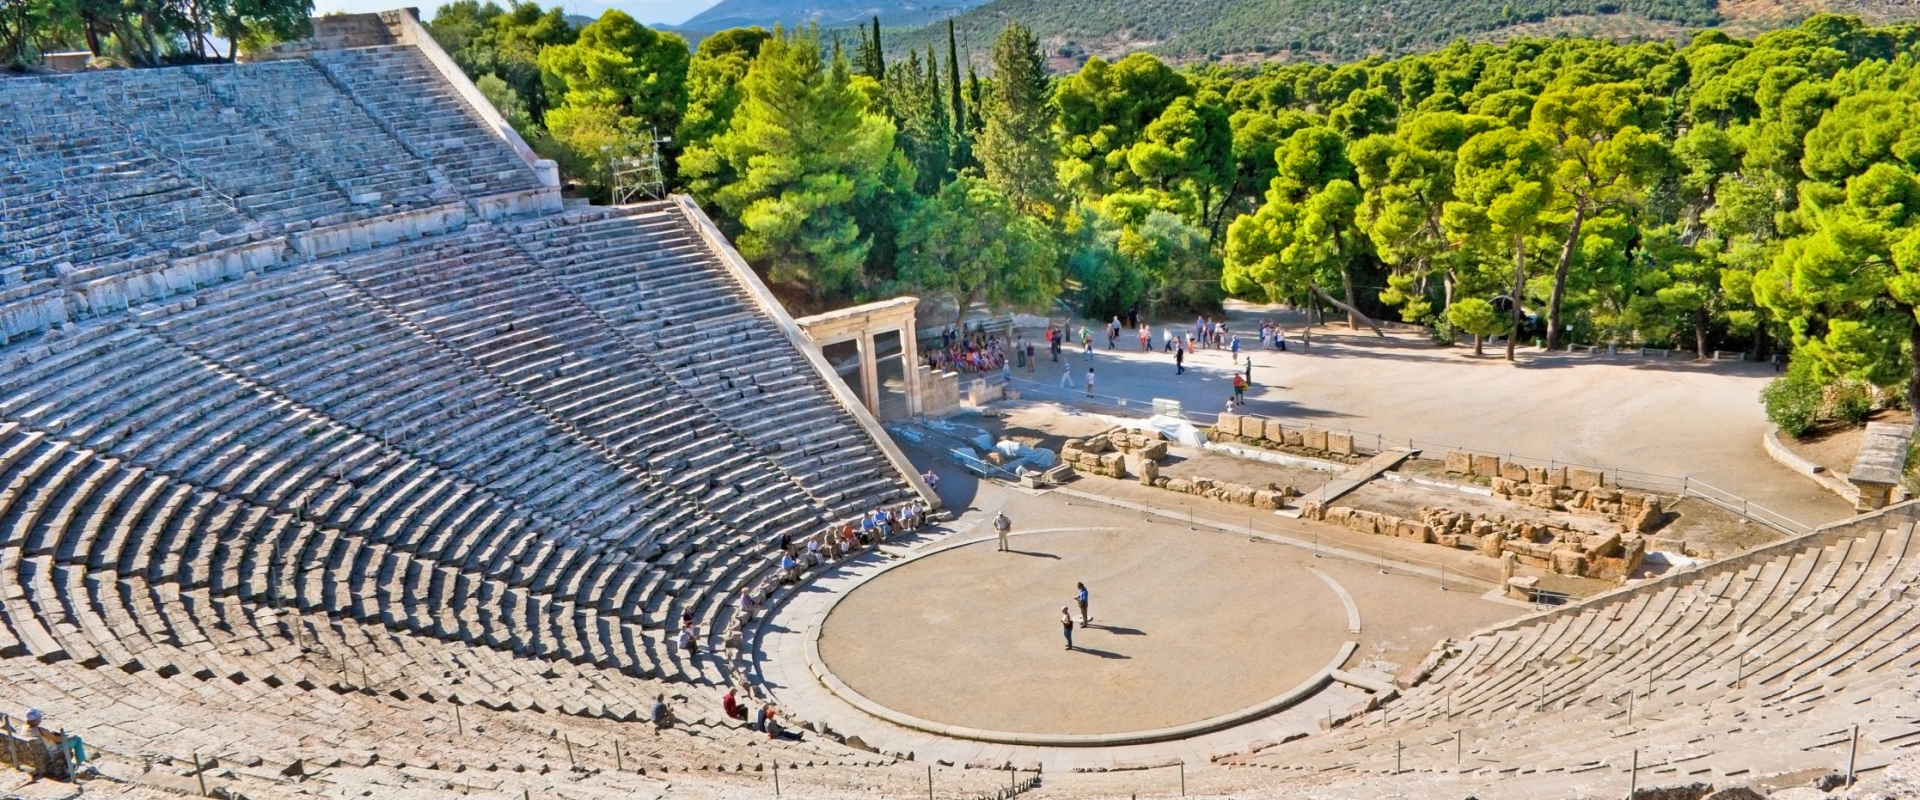 The ancient theatre of Epidaurus, remarkable for its amazing acoustic. A trademark of Classical Greece.